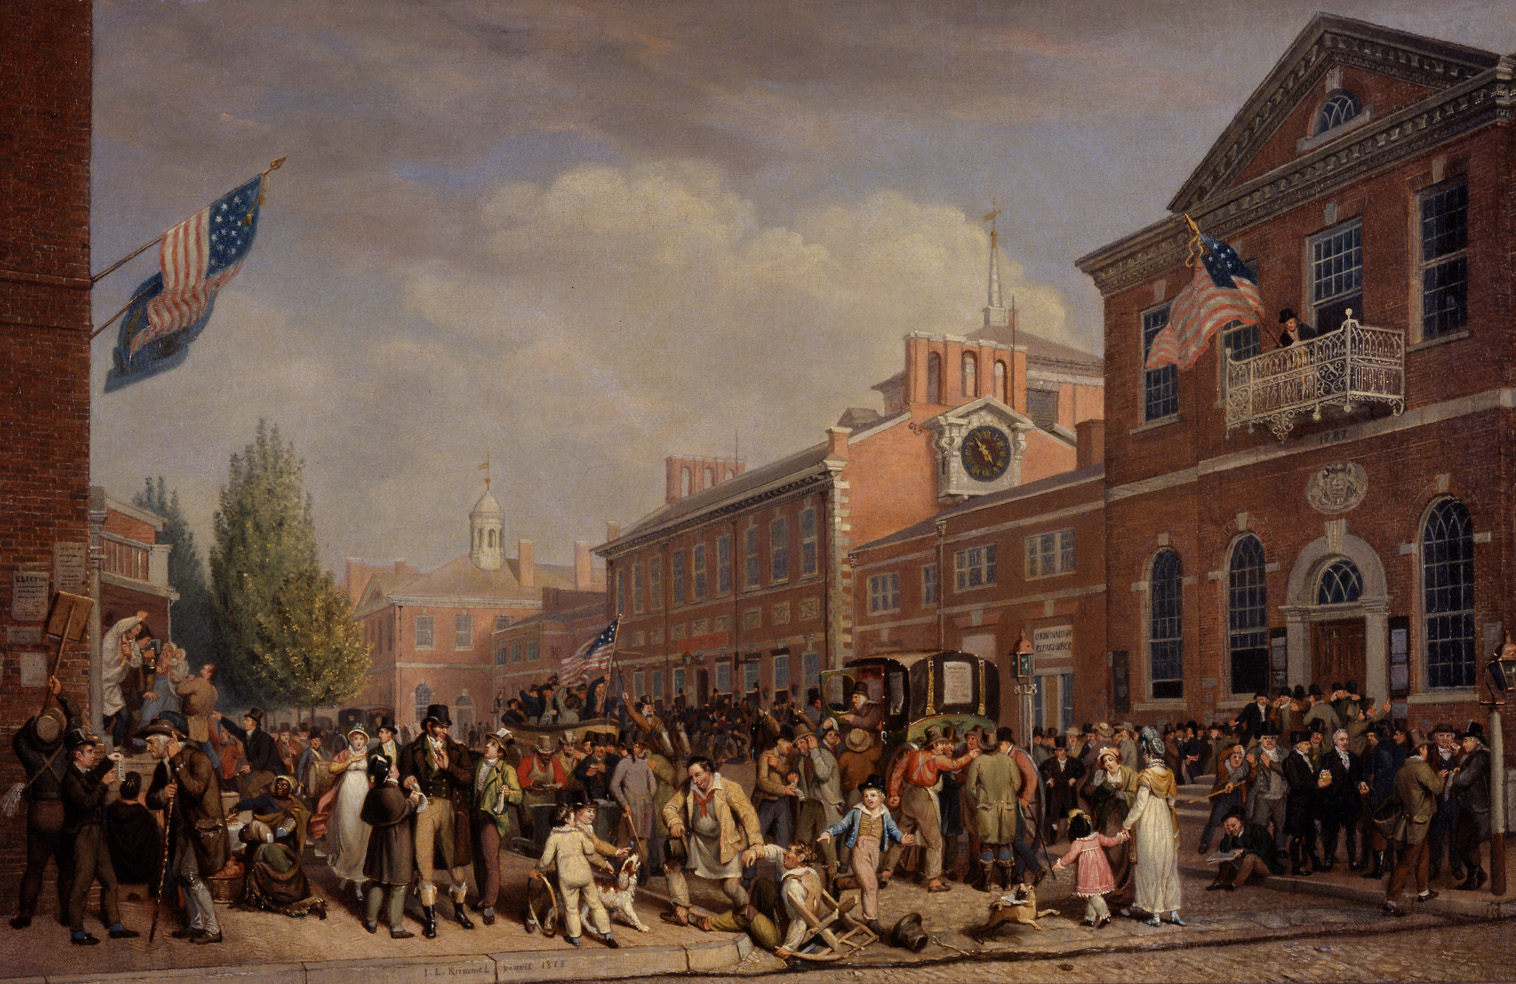 Depiction of election-day activities in Philadelphia